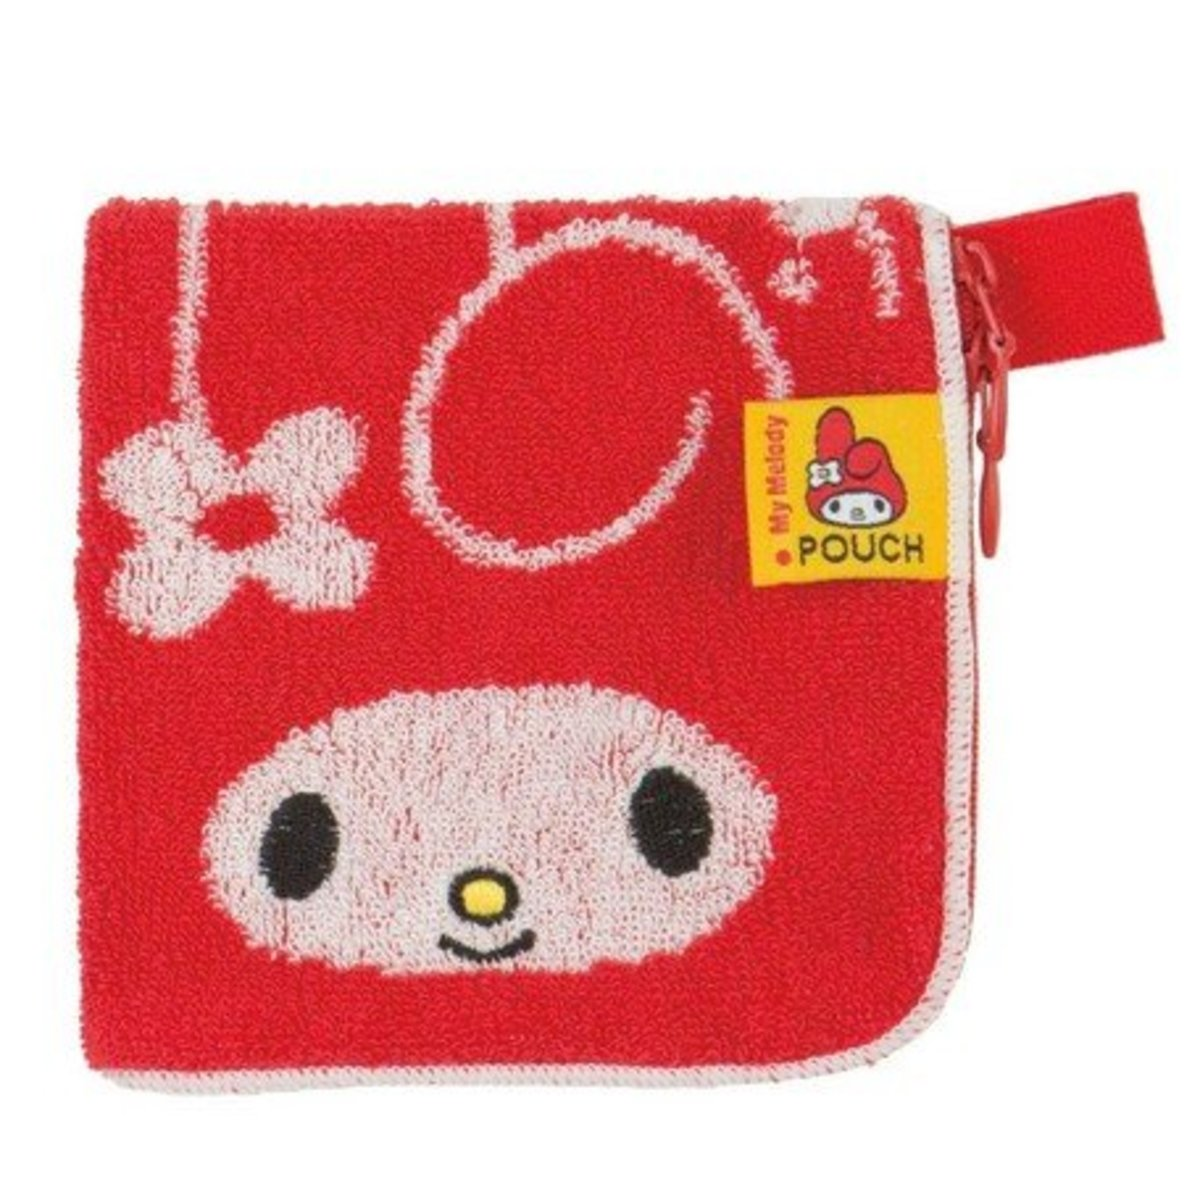 (Red My Melody) Japan Multi-function Towel Pouch for Umbrella/Water Bottle